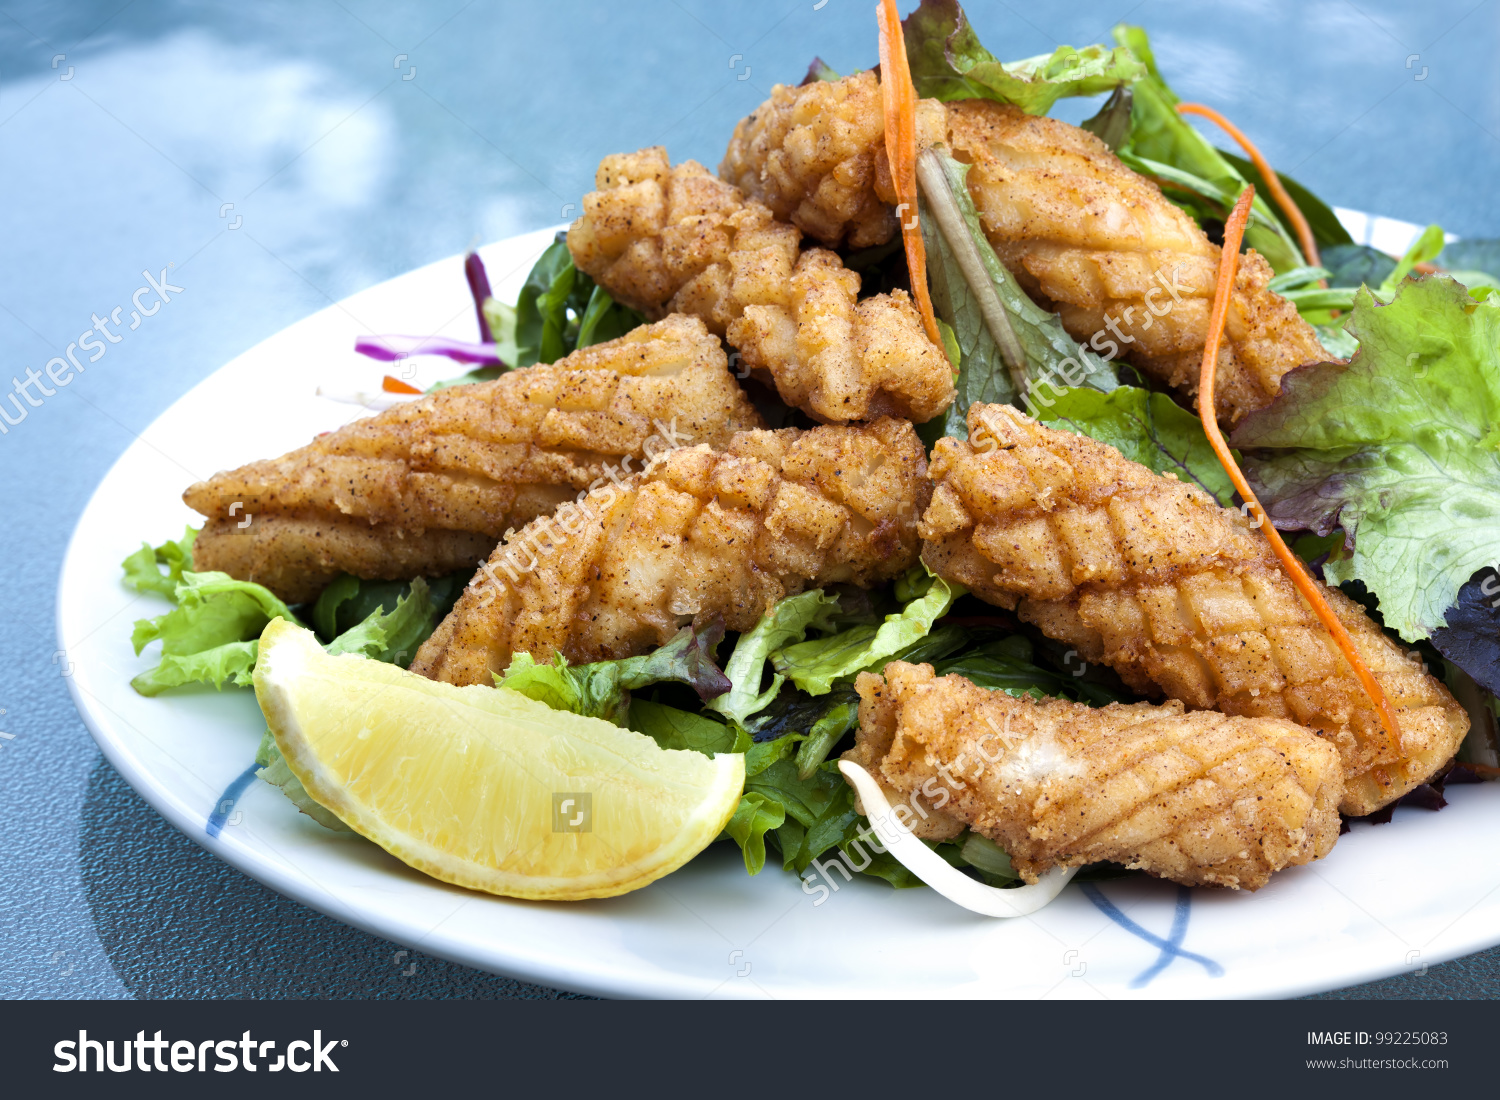 Calamari Salad Lemon Delicious Salt Pepper Stock Photo 99225083.